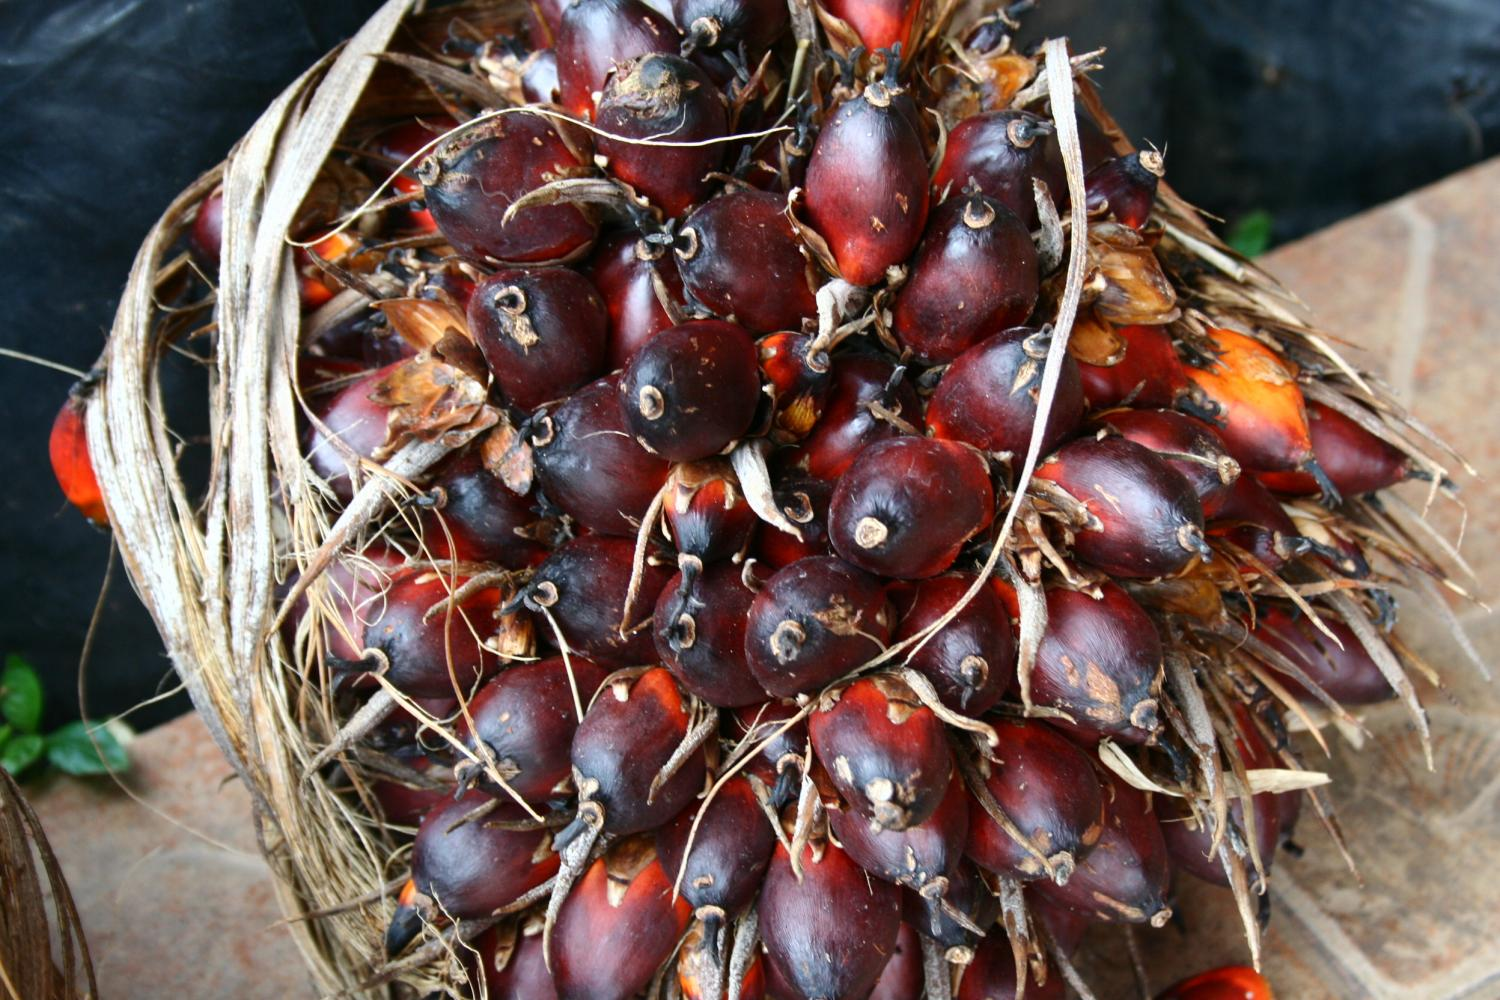 Palm oil prices have seen a decline in the past few months. (Photo by Theerawat Khamthita)